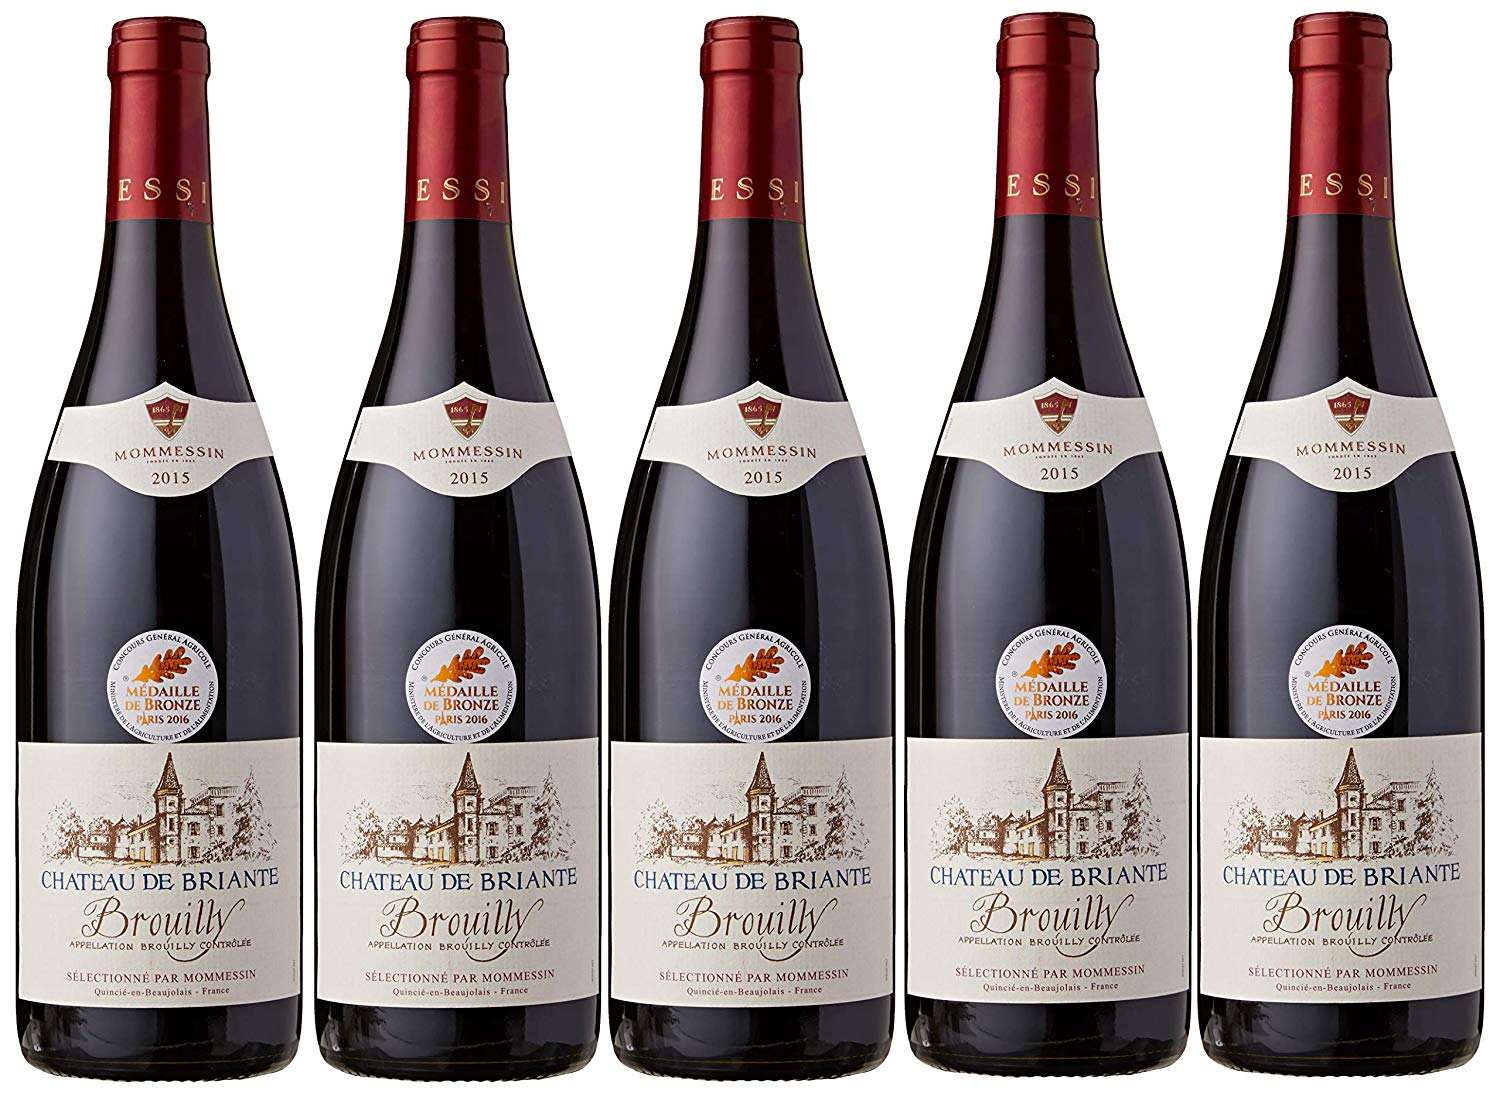 Lot 60 - 2015 Brouilly Chateau de Briante, Mommesin, Brouilly, Beaujolais, France, 6 bottles